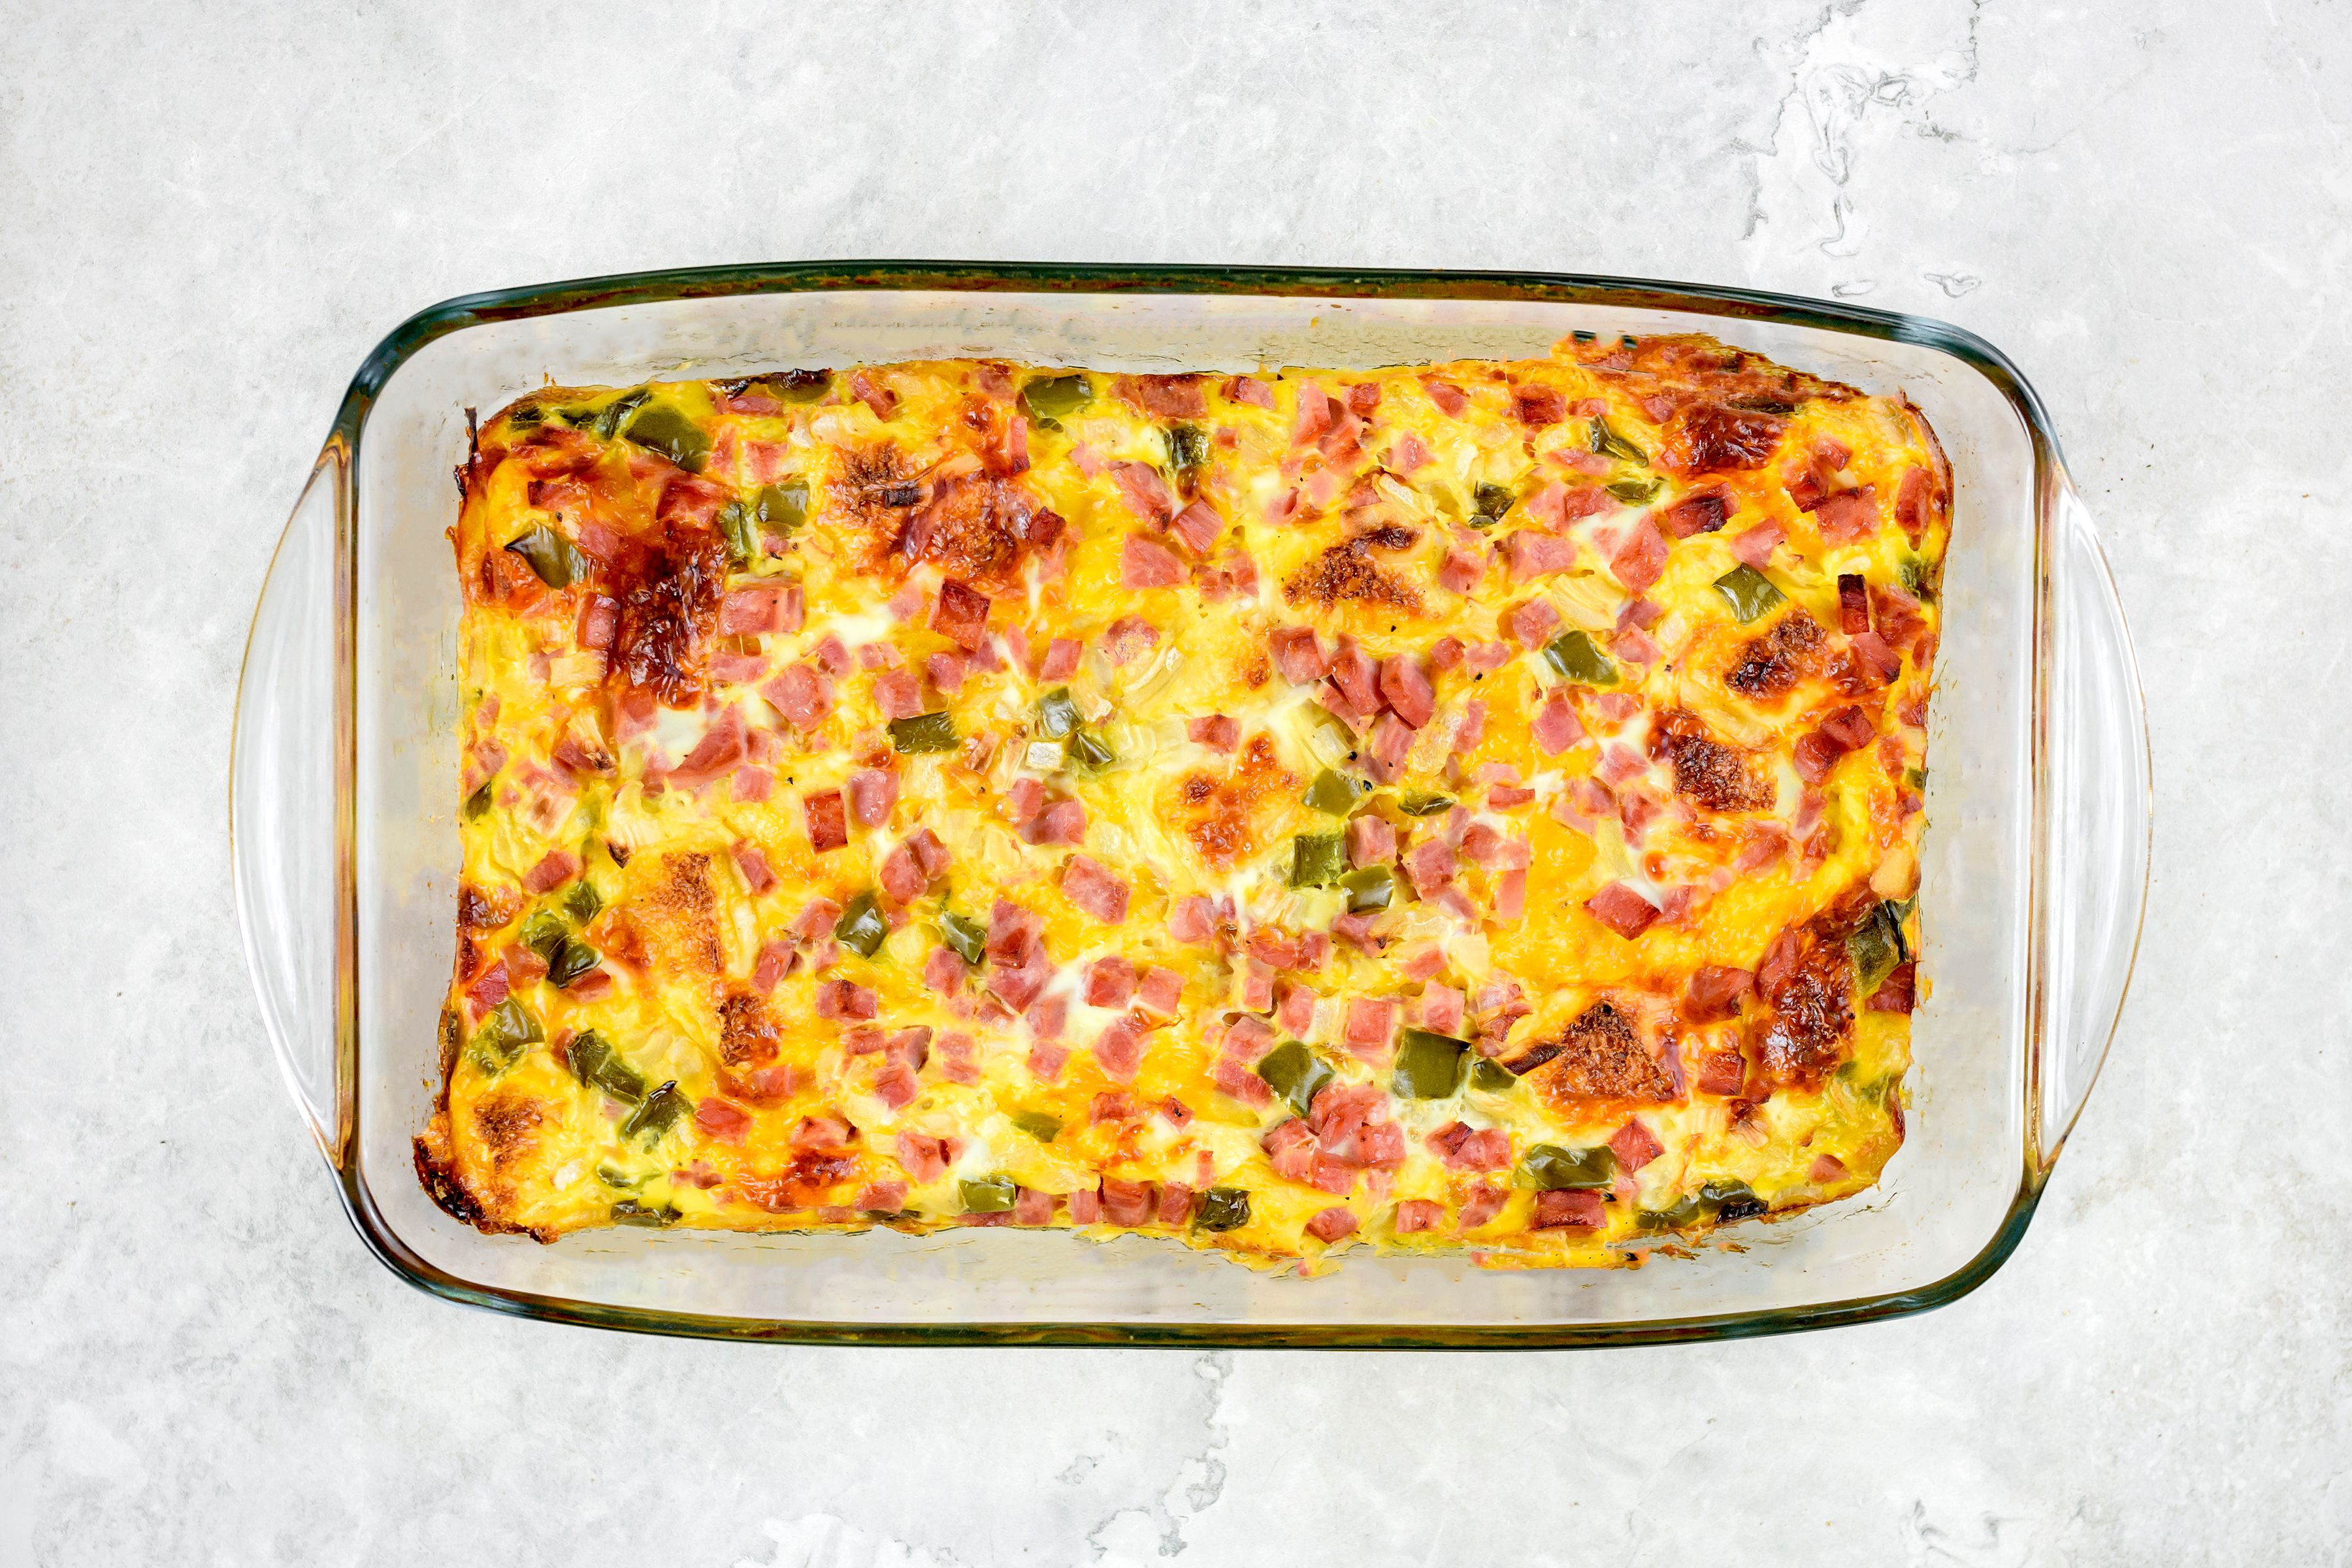 Baked western ham and egg casserole in dish